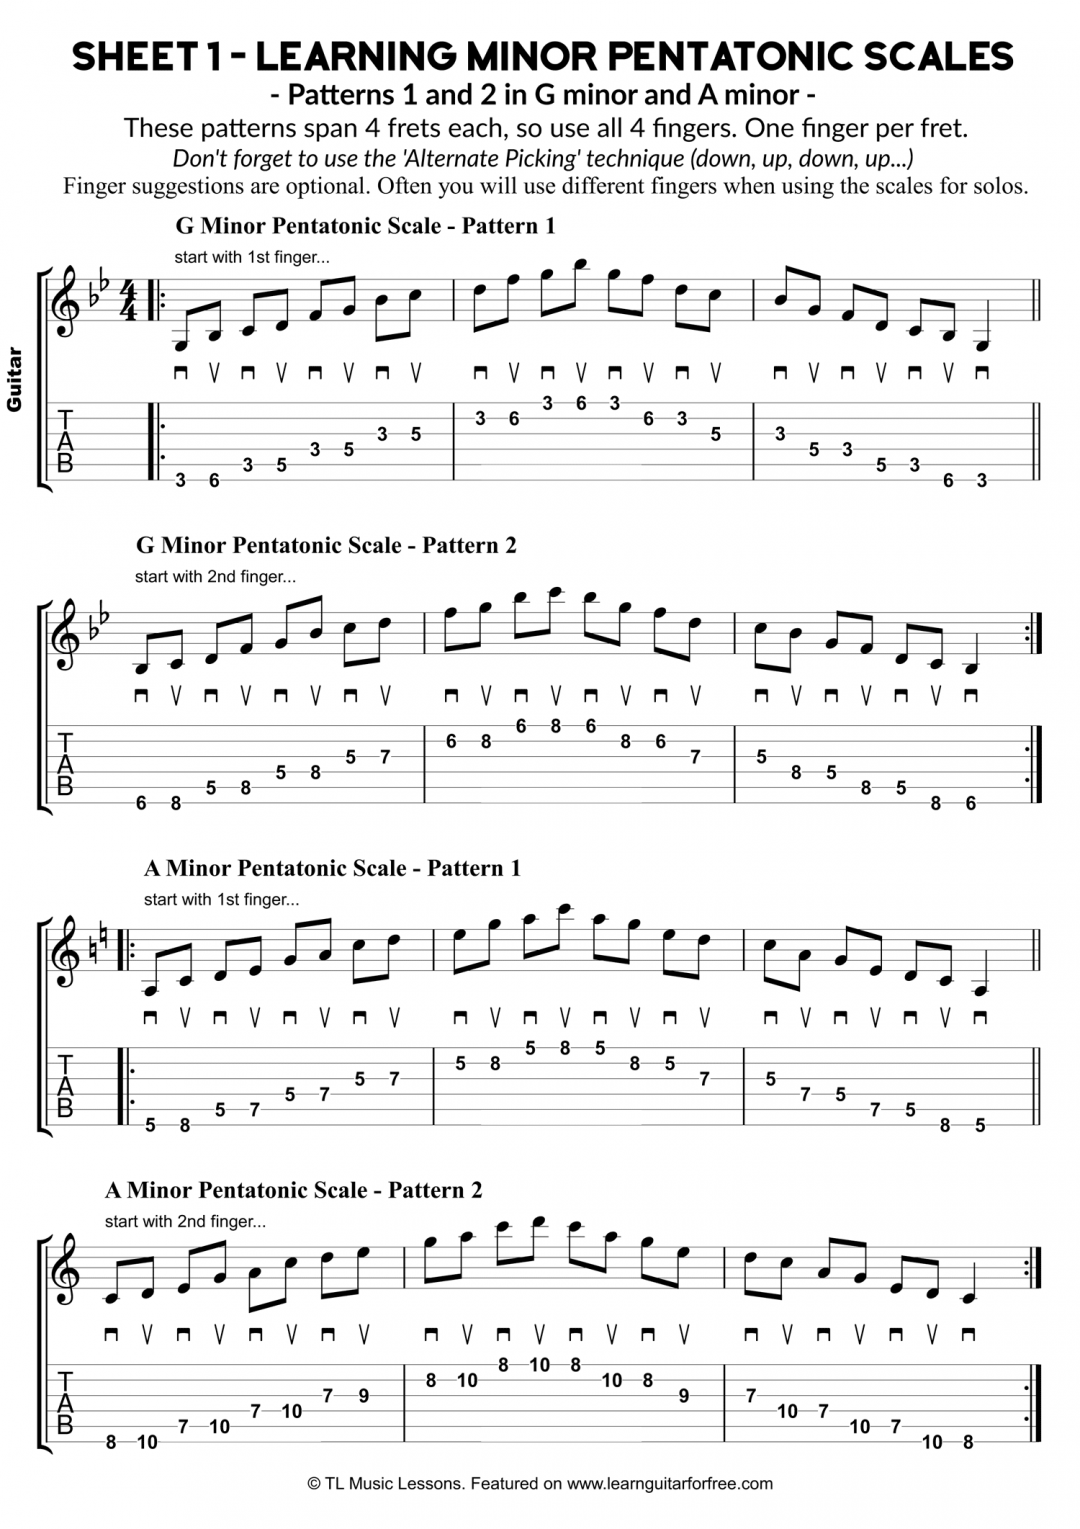 Sheet 1 – Learning Minor Pentatonic Scales – G minor and A minor – Patterns 1 and 2